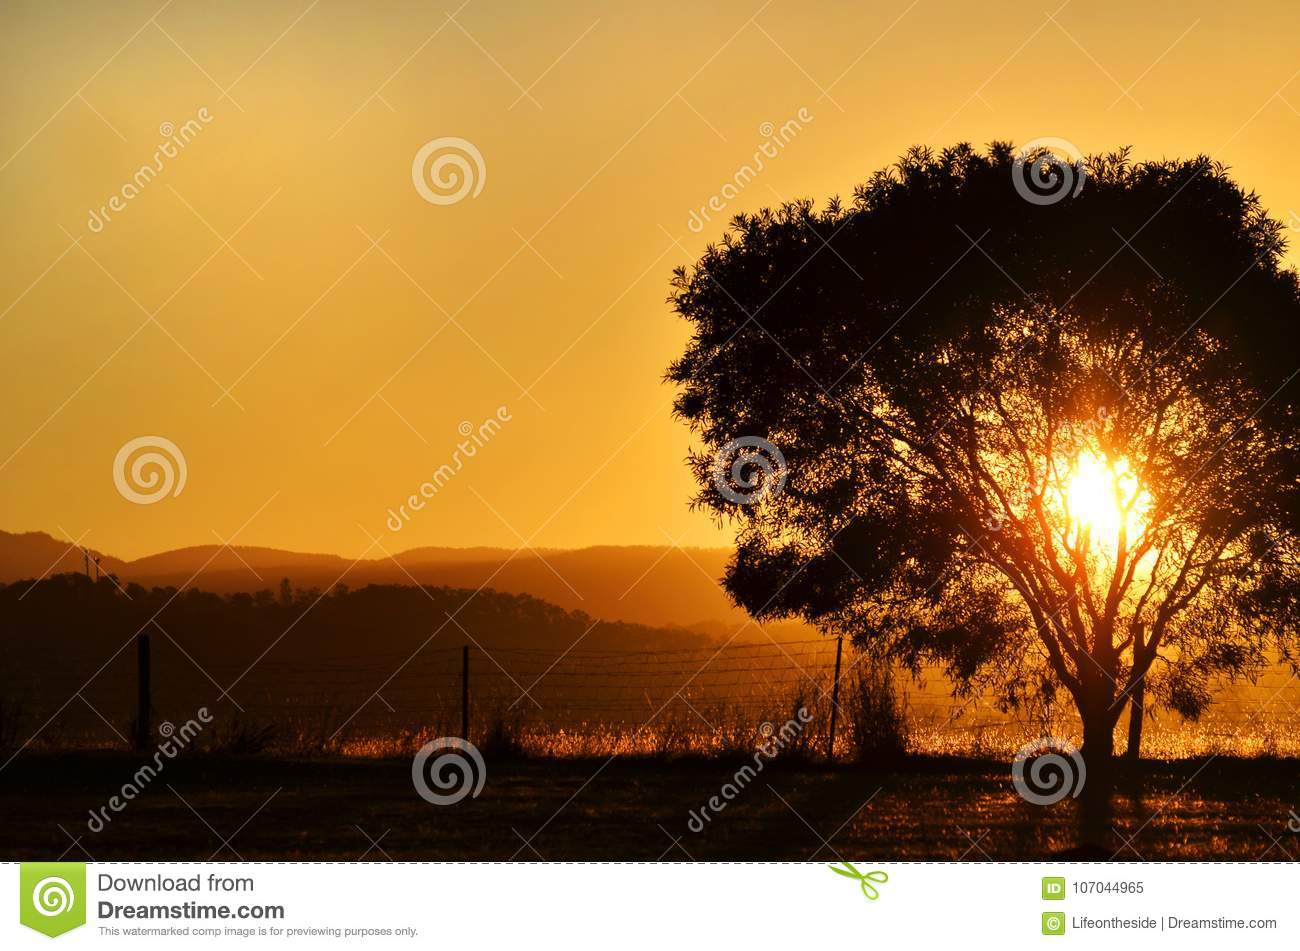 Stunning sunset sun setting behind tree, mountains rural Australia